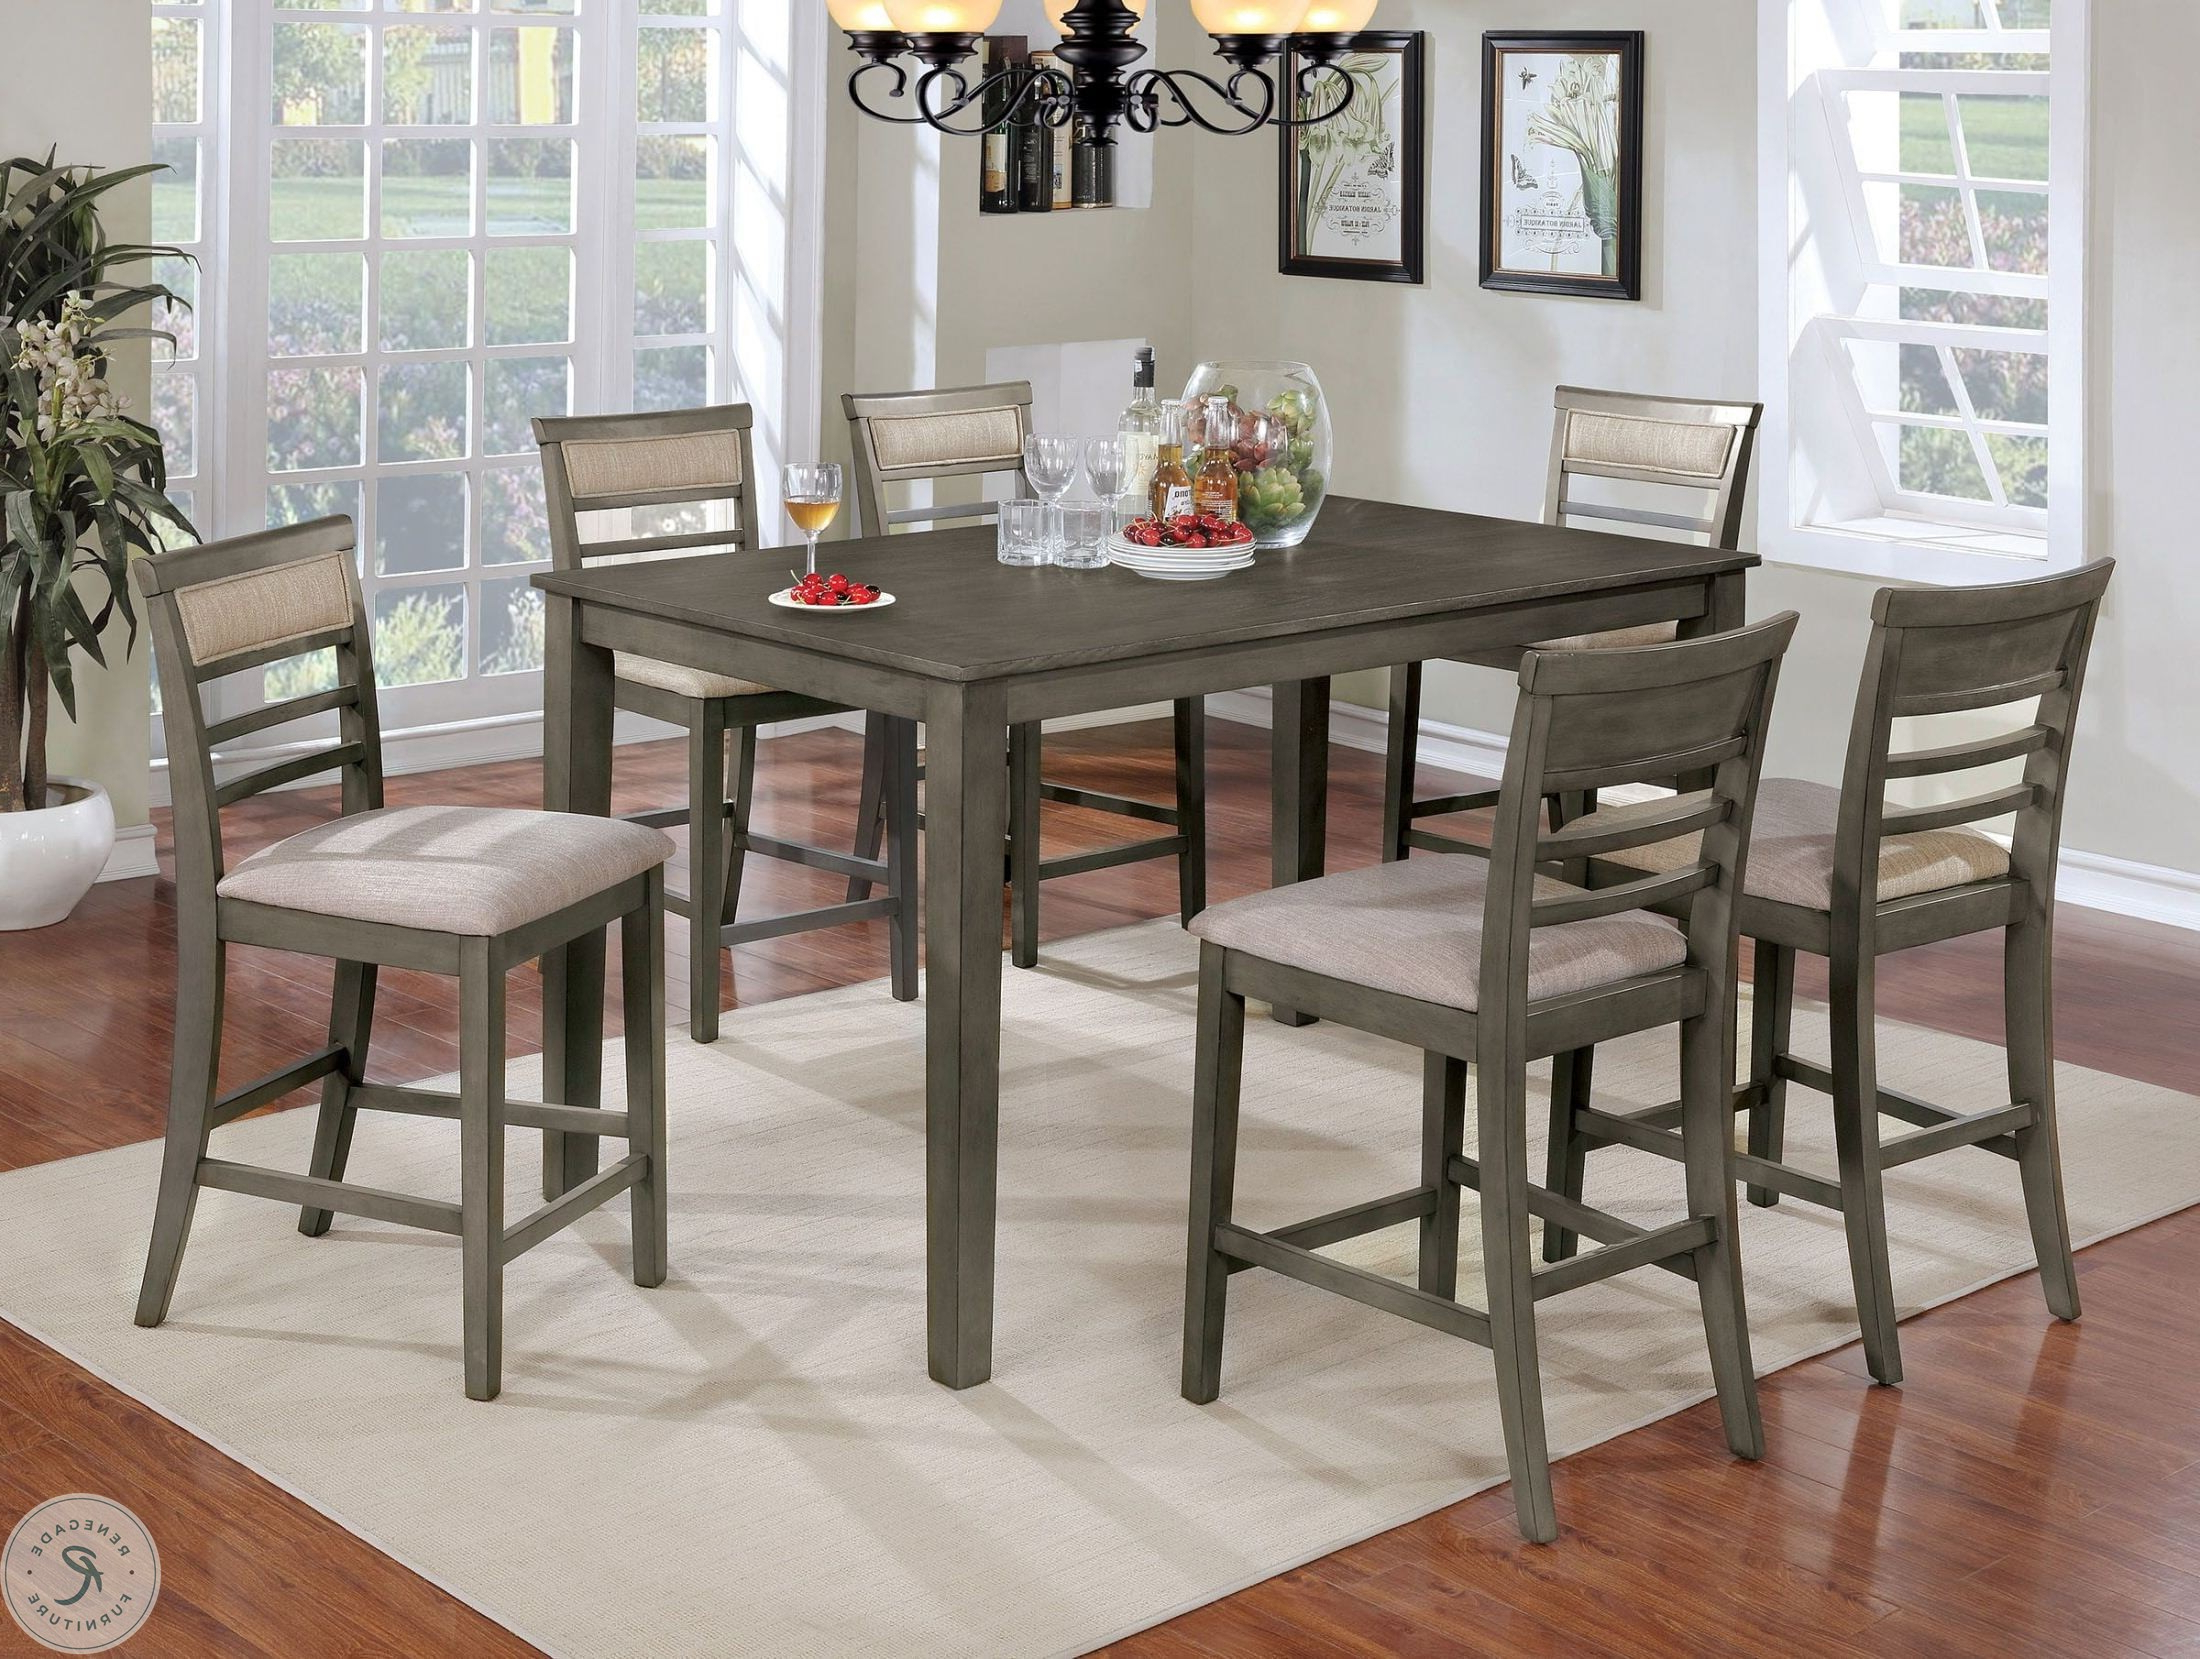 Newest Anette 3 Piece Counter Height Dining Sets With Regard To Fafnir Gray 7 Piece Counter Height Dining Room Set (View 14 of 20)